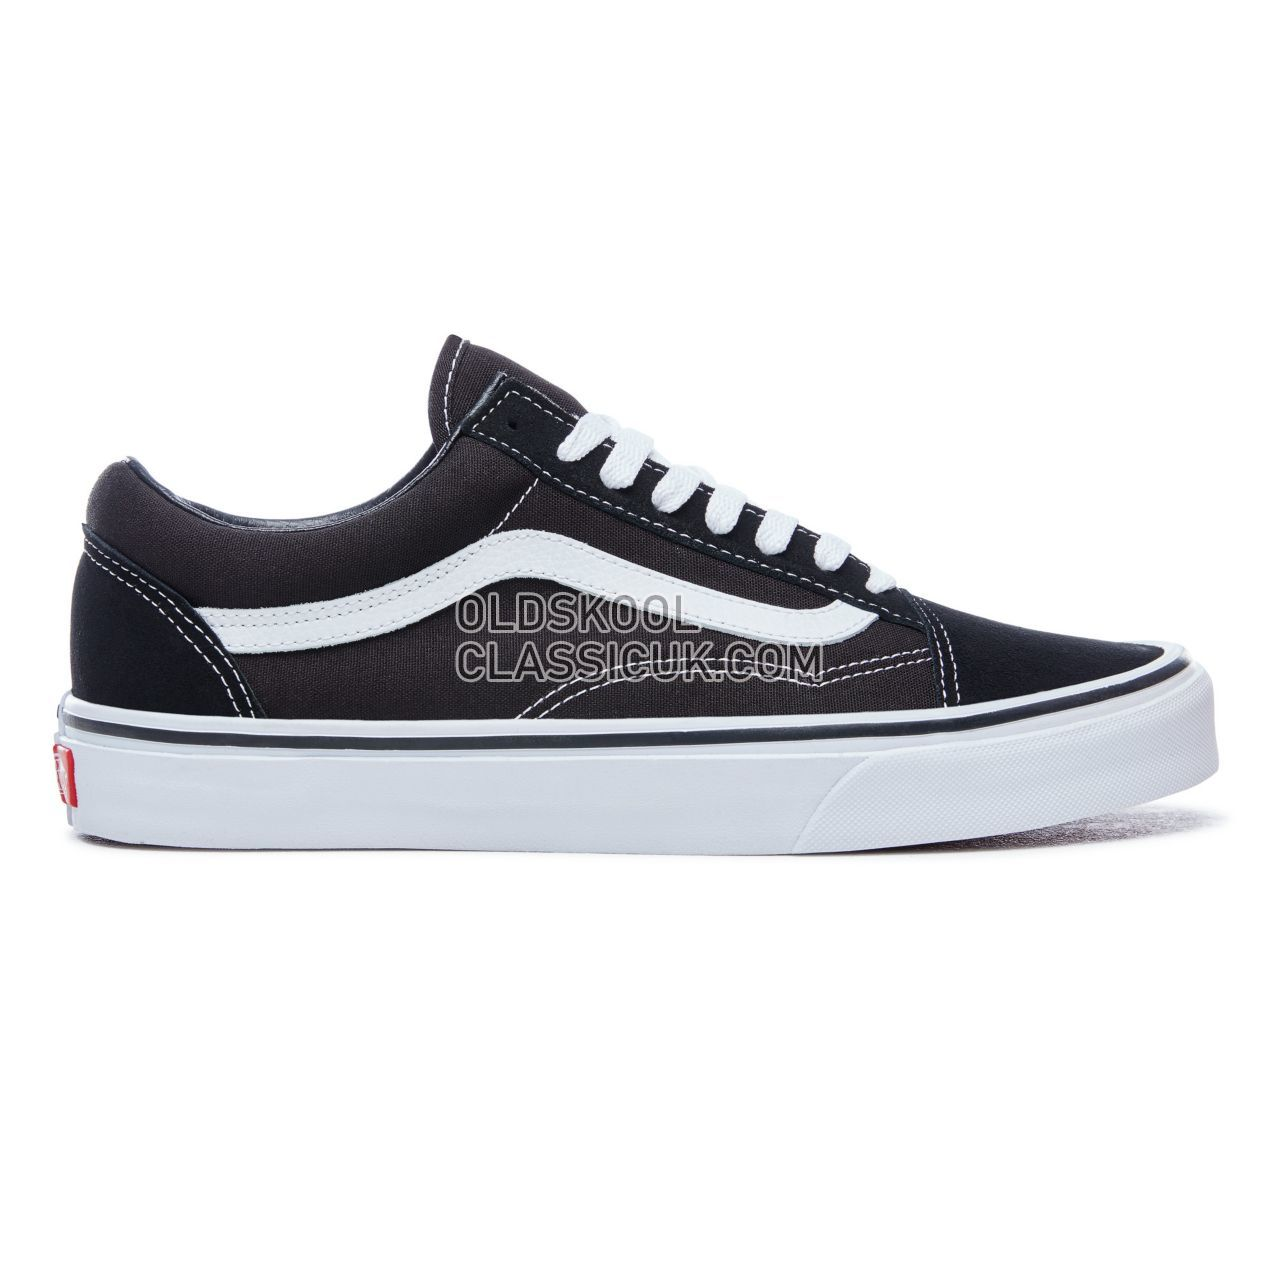 Vans Old Skool Sneakers Mens Womens Unisex Black VN000D3HY28 Shoes